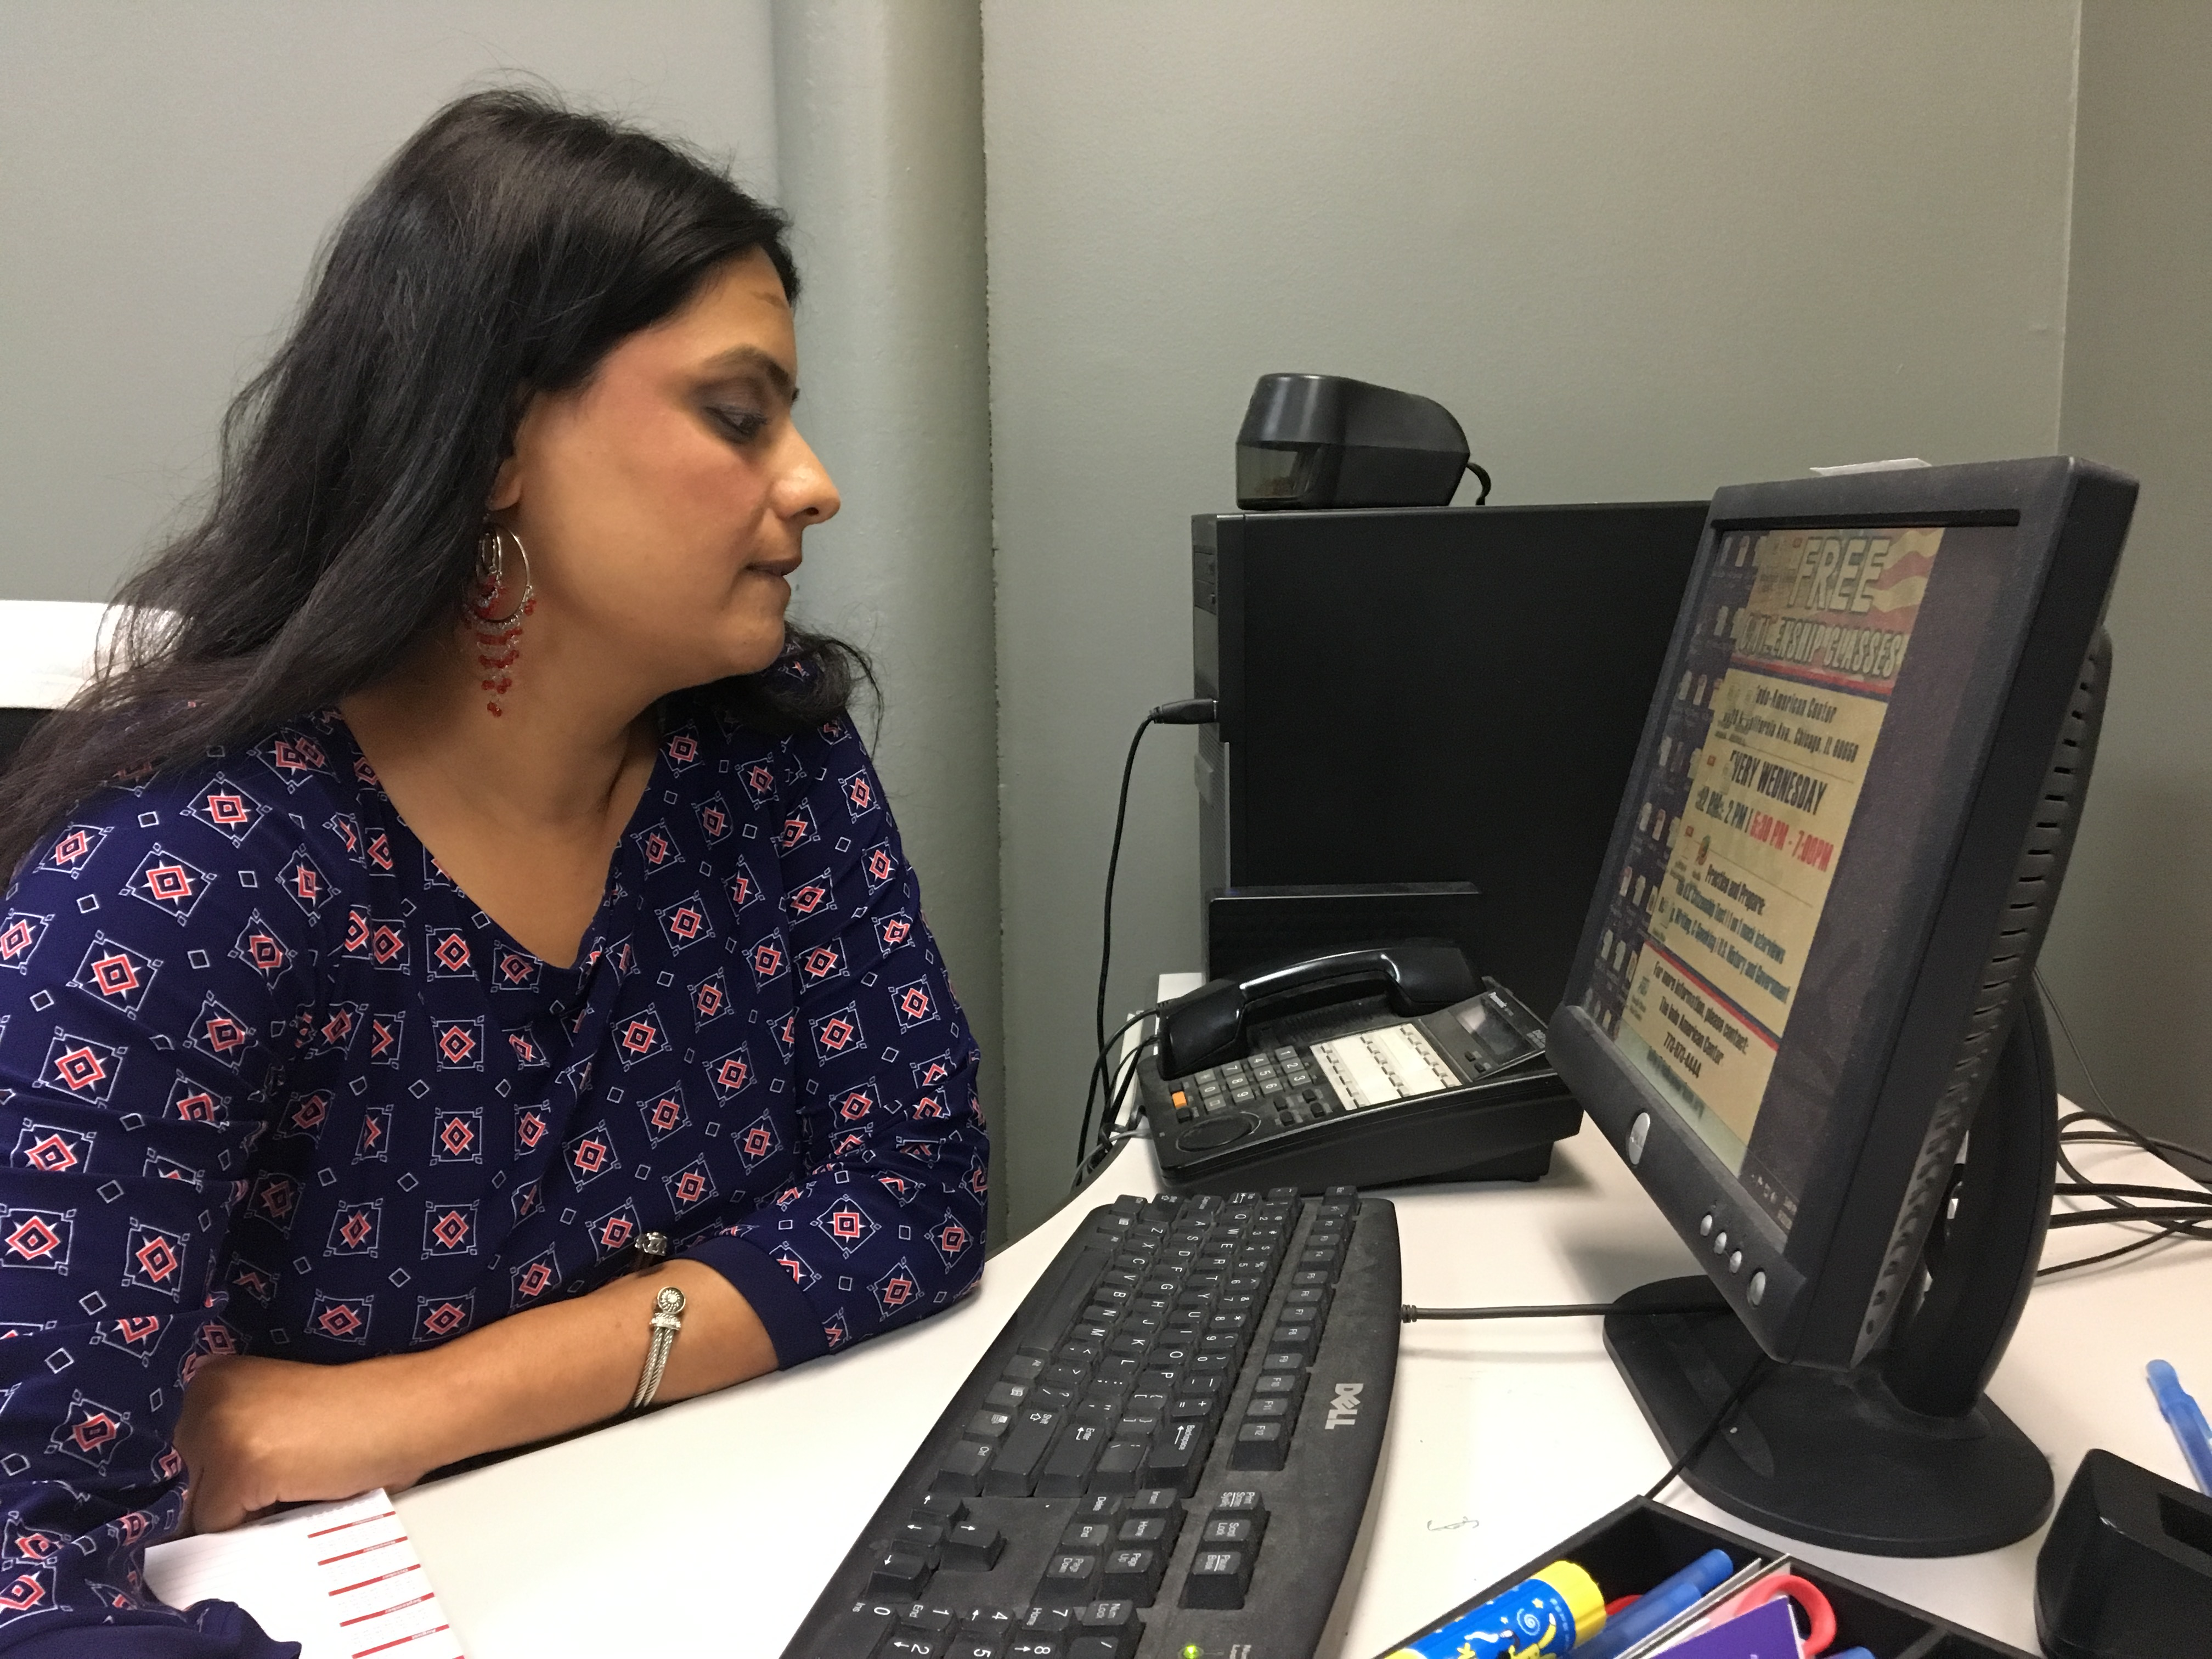 Amina Khan, staff attorney at the Indo-American Center, blocked out ten hours in September to help eligible immigrants fill out their DACA renewal applications. Only one person showed up. (Odette Yousef/WBEZ)